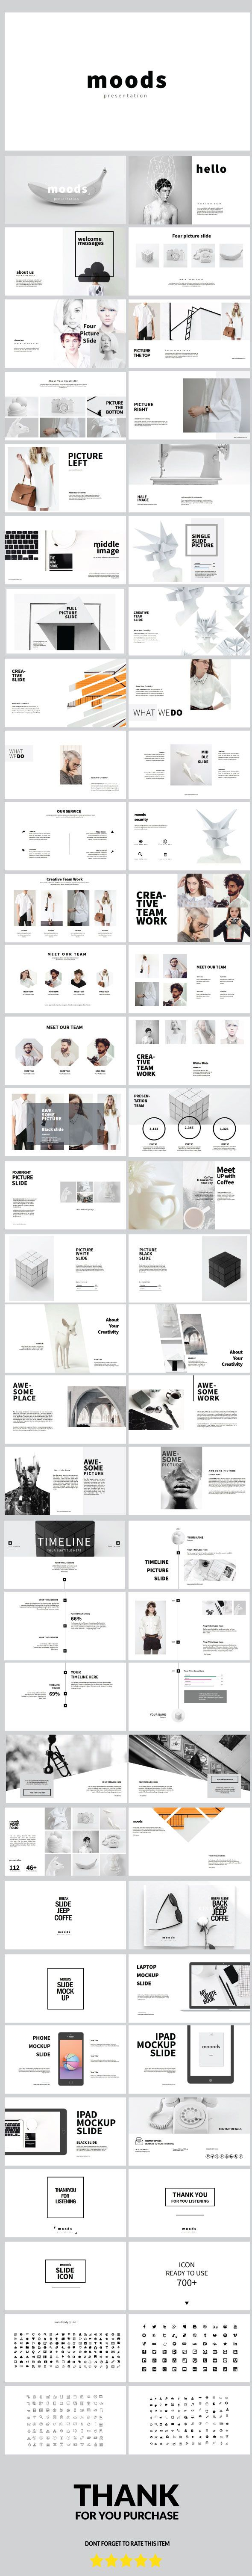 moods multipurpose powerpoint template love a good success story